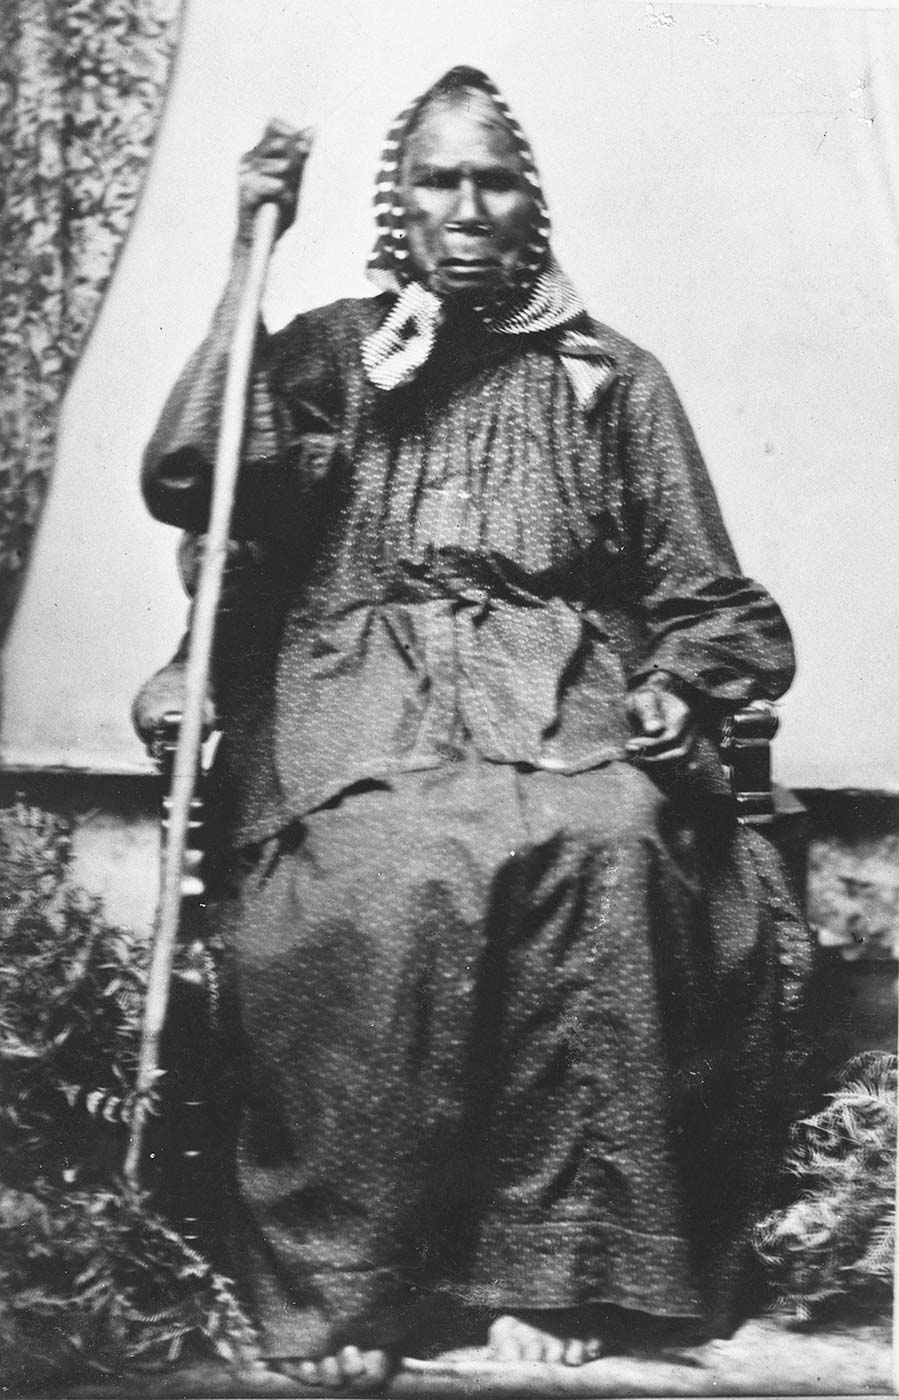 Black and white photograph of a seated elderly person holding a staff. - click to view larger image